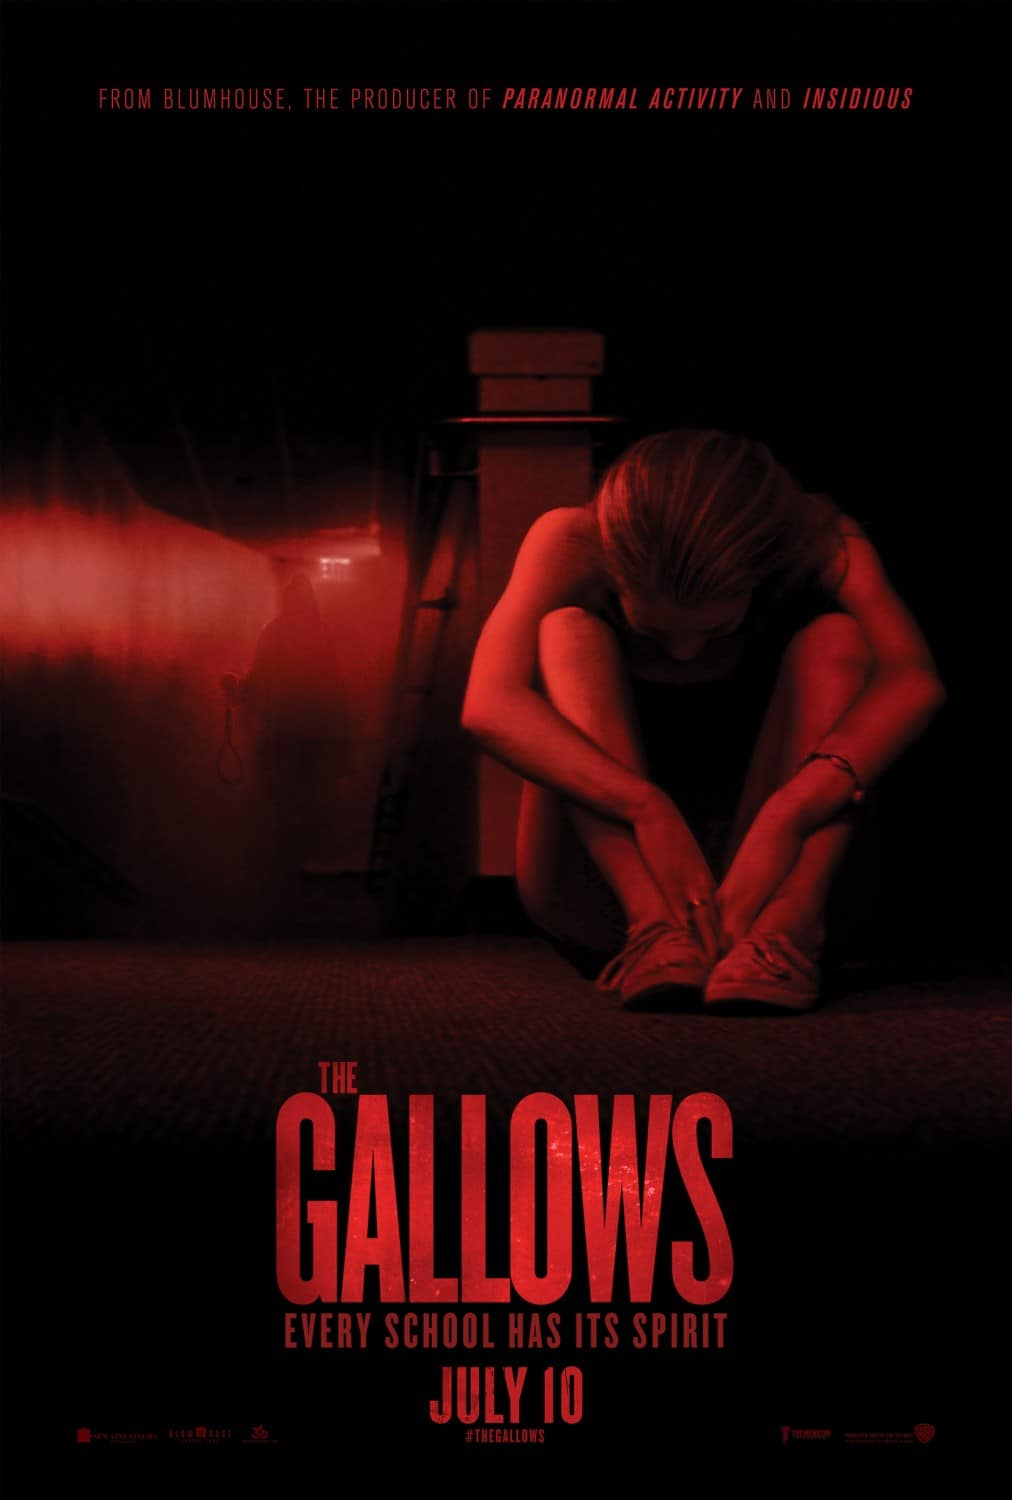 thegallowsposter - Gallows, The (2015)